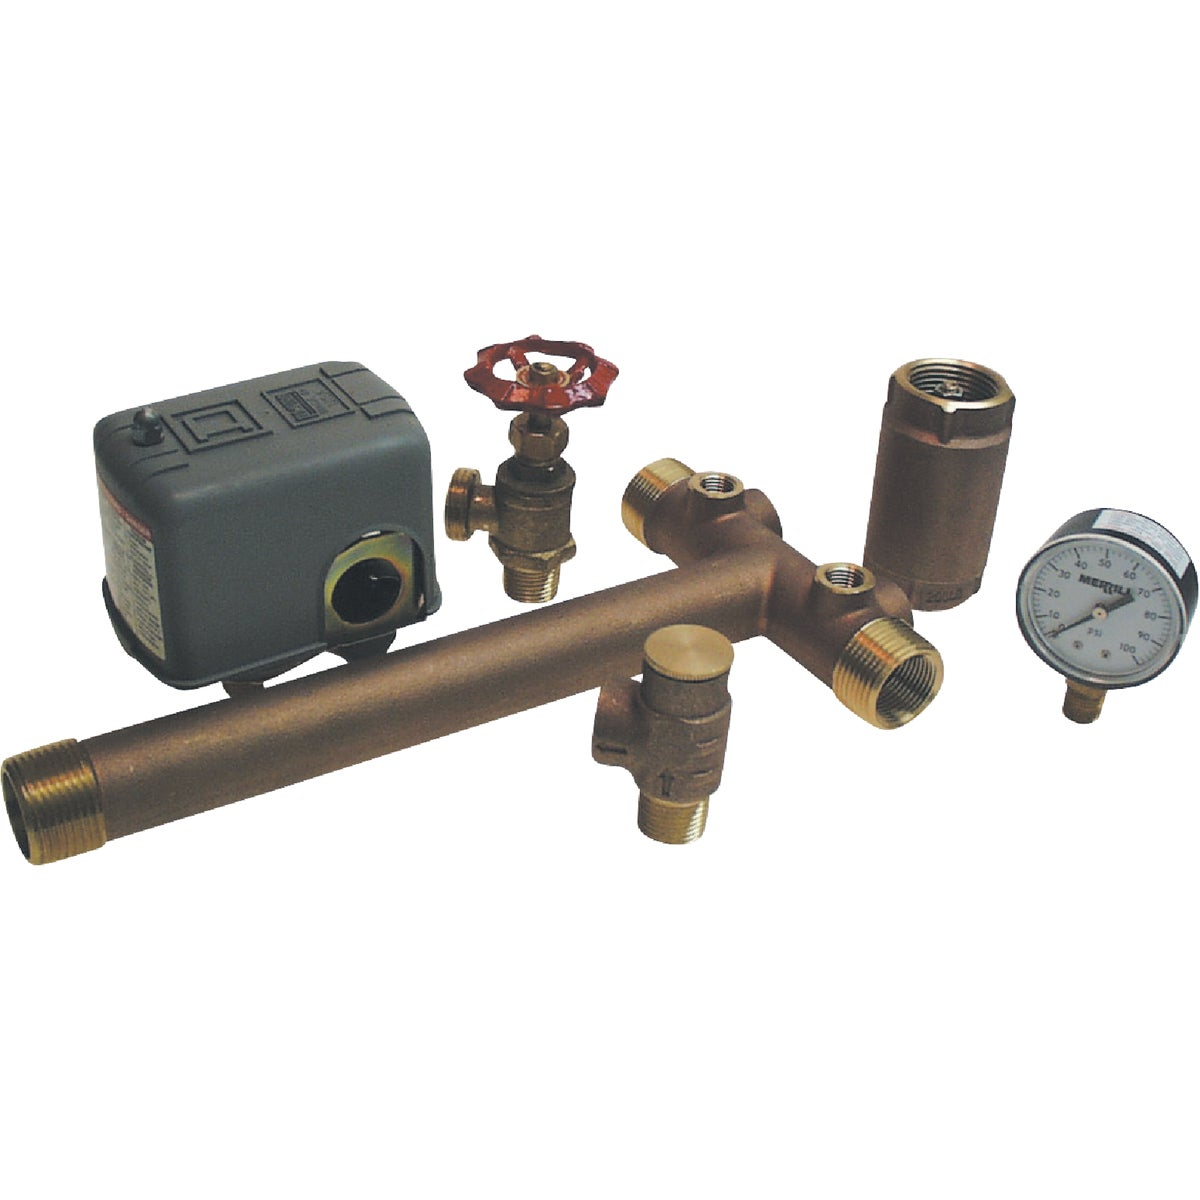 SUB WELL PUMP FITTINGS - 023281 by Star Water Systems